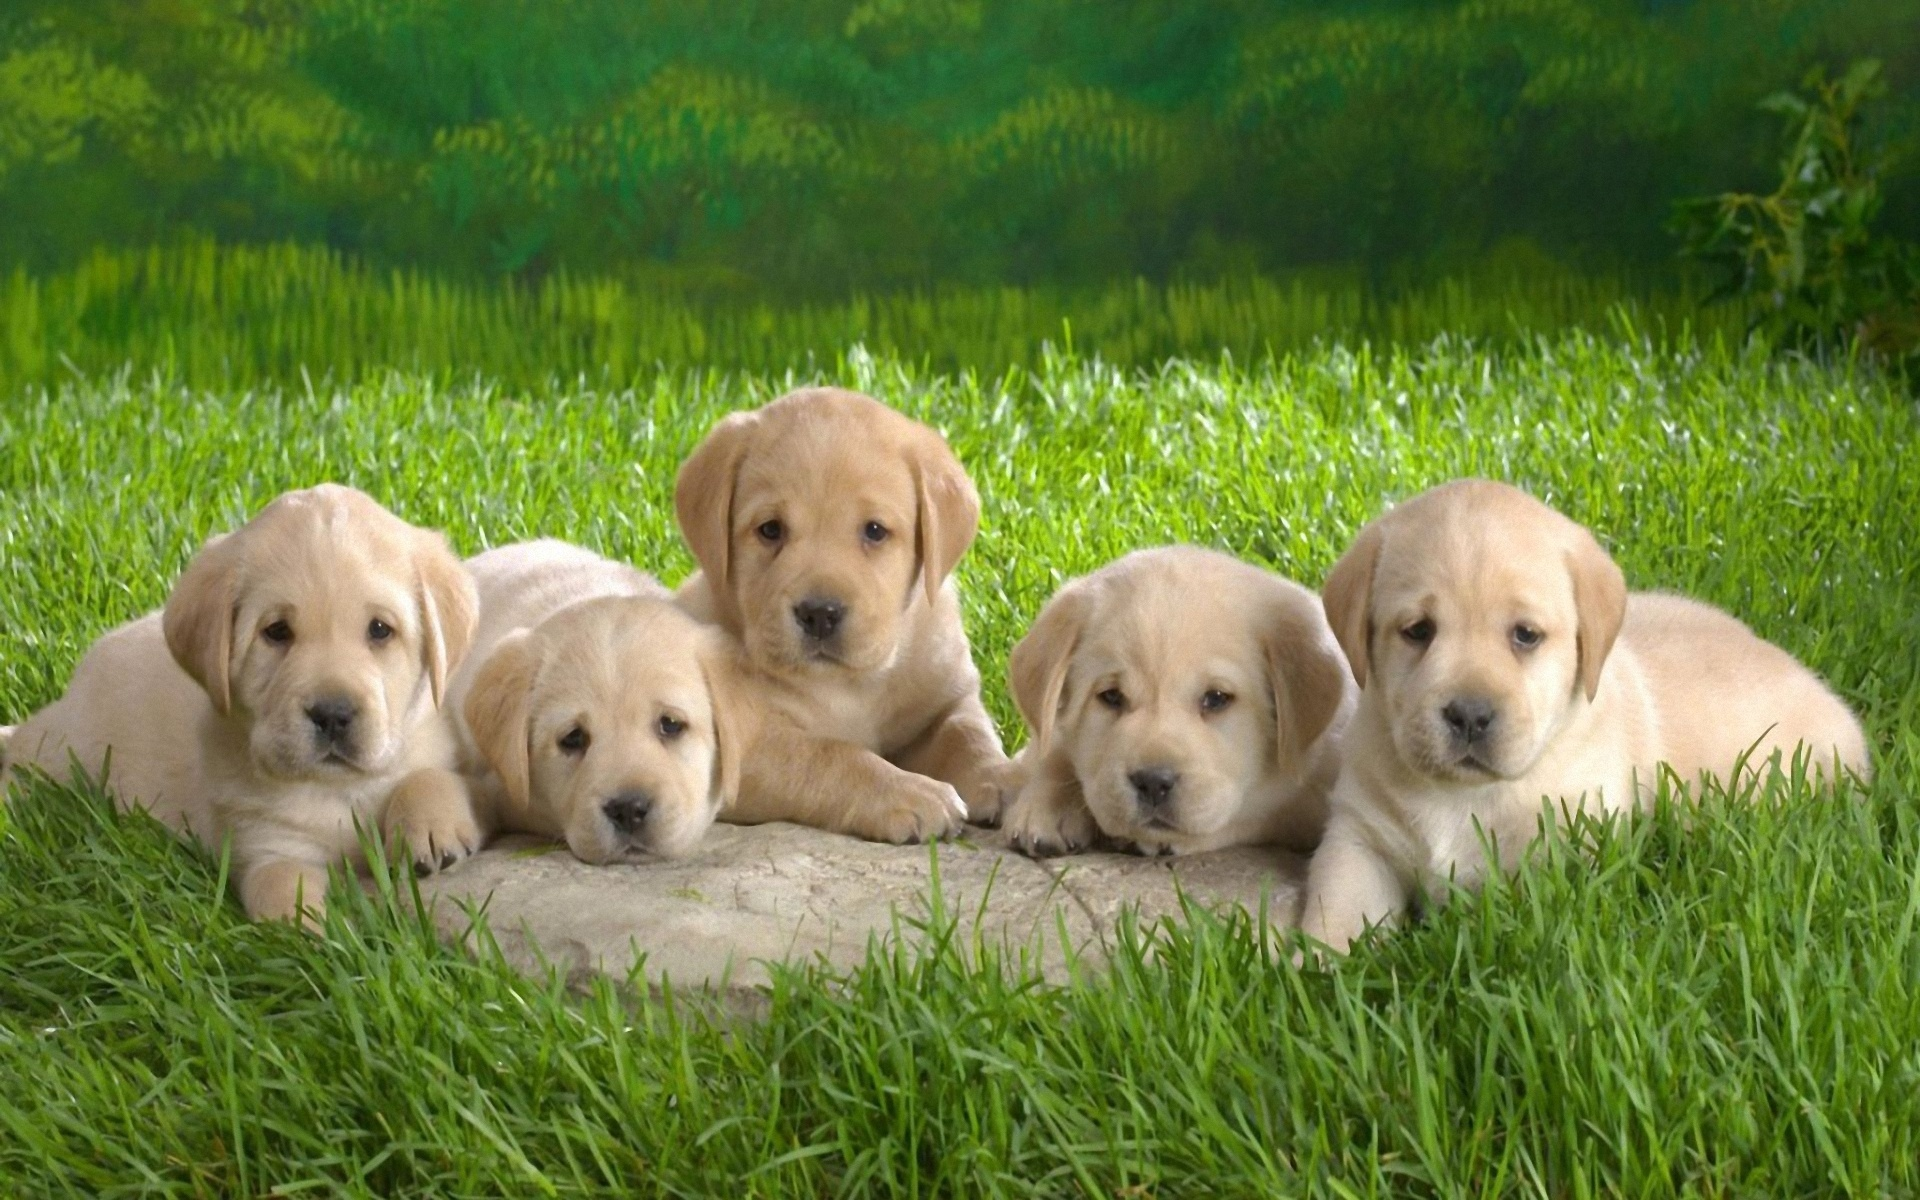 cute puppies hd desktop wallpaper hd desktop wallpaper